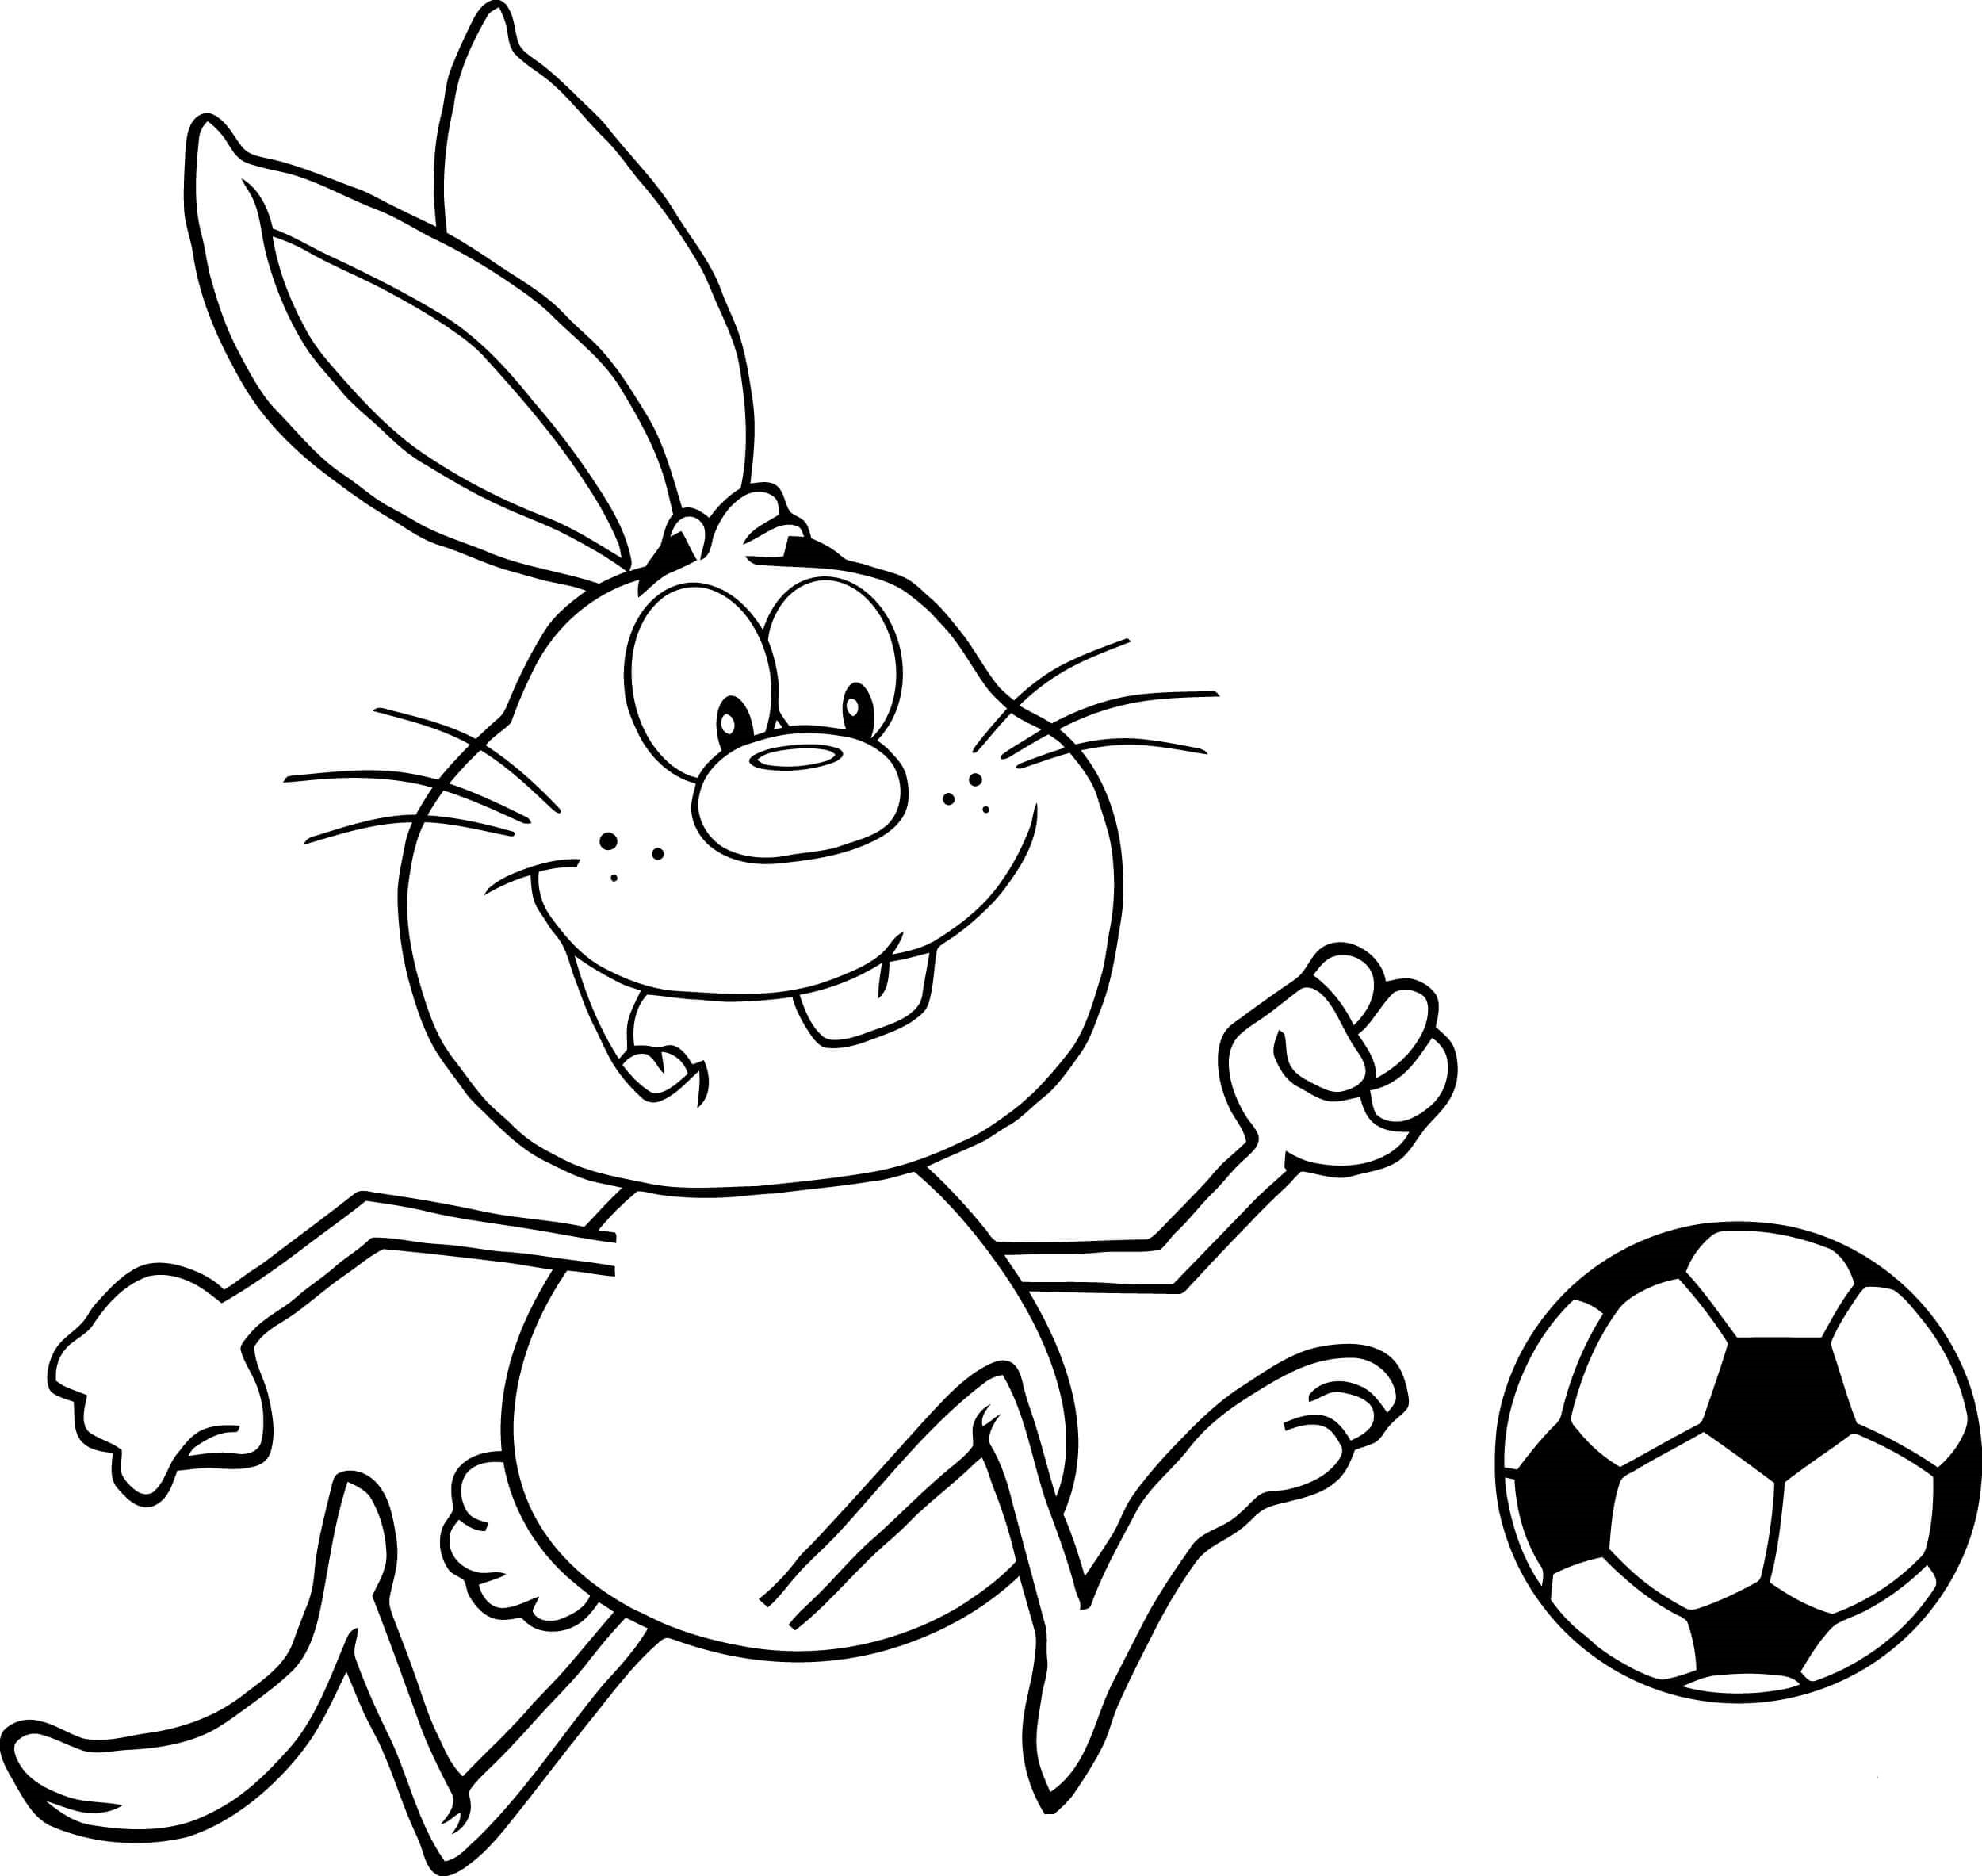 Coloriage Lapin Jouer au Football